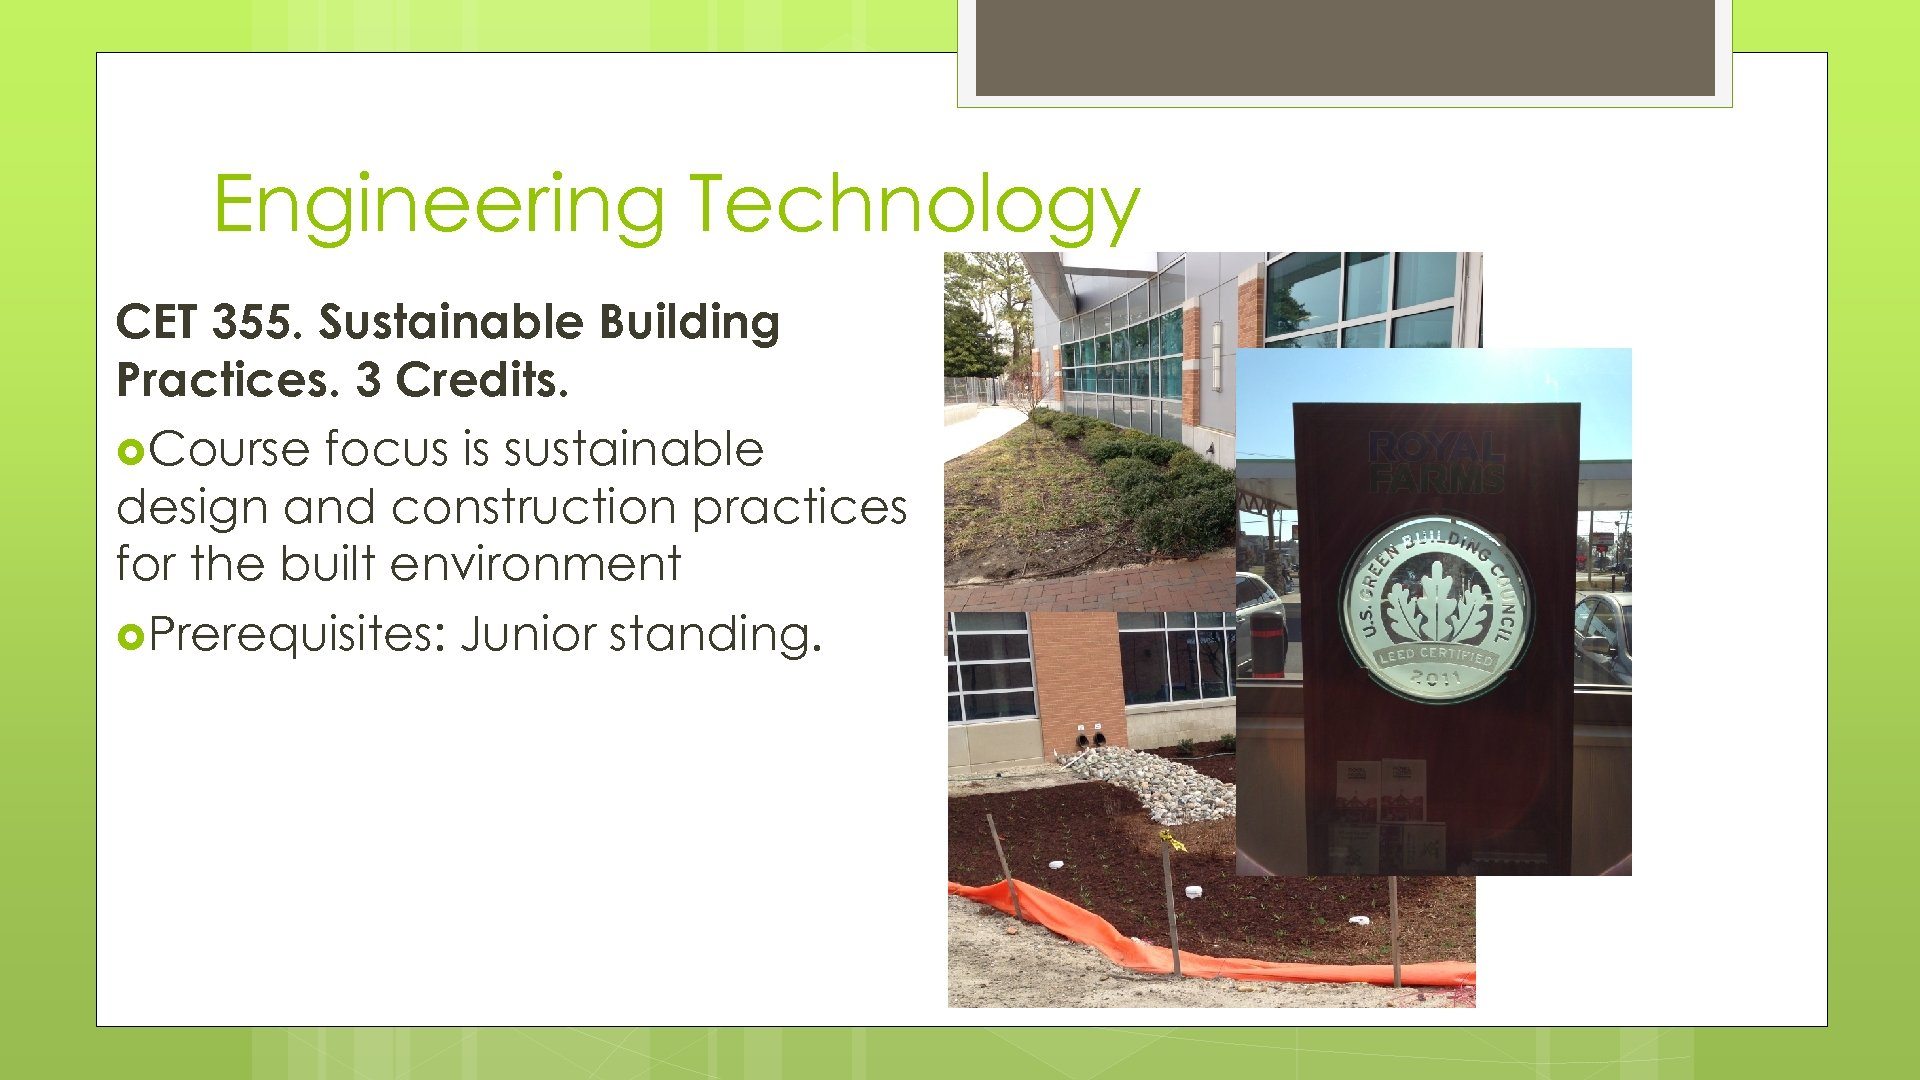 Engineering Technology CET 355. Sustainable Building Practices. 3 Credits. Course focus is sustainable design